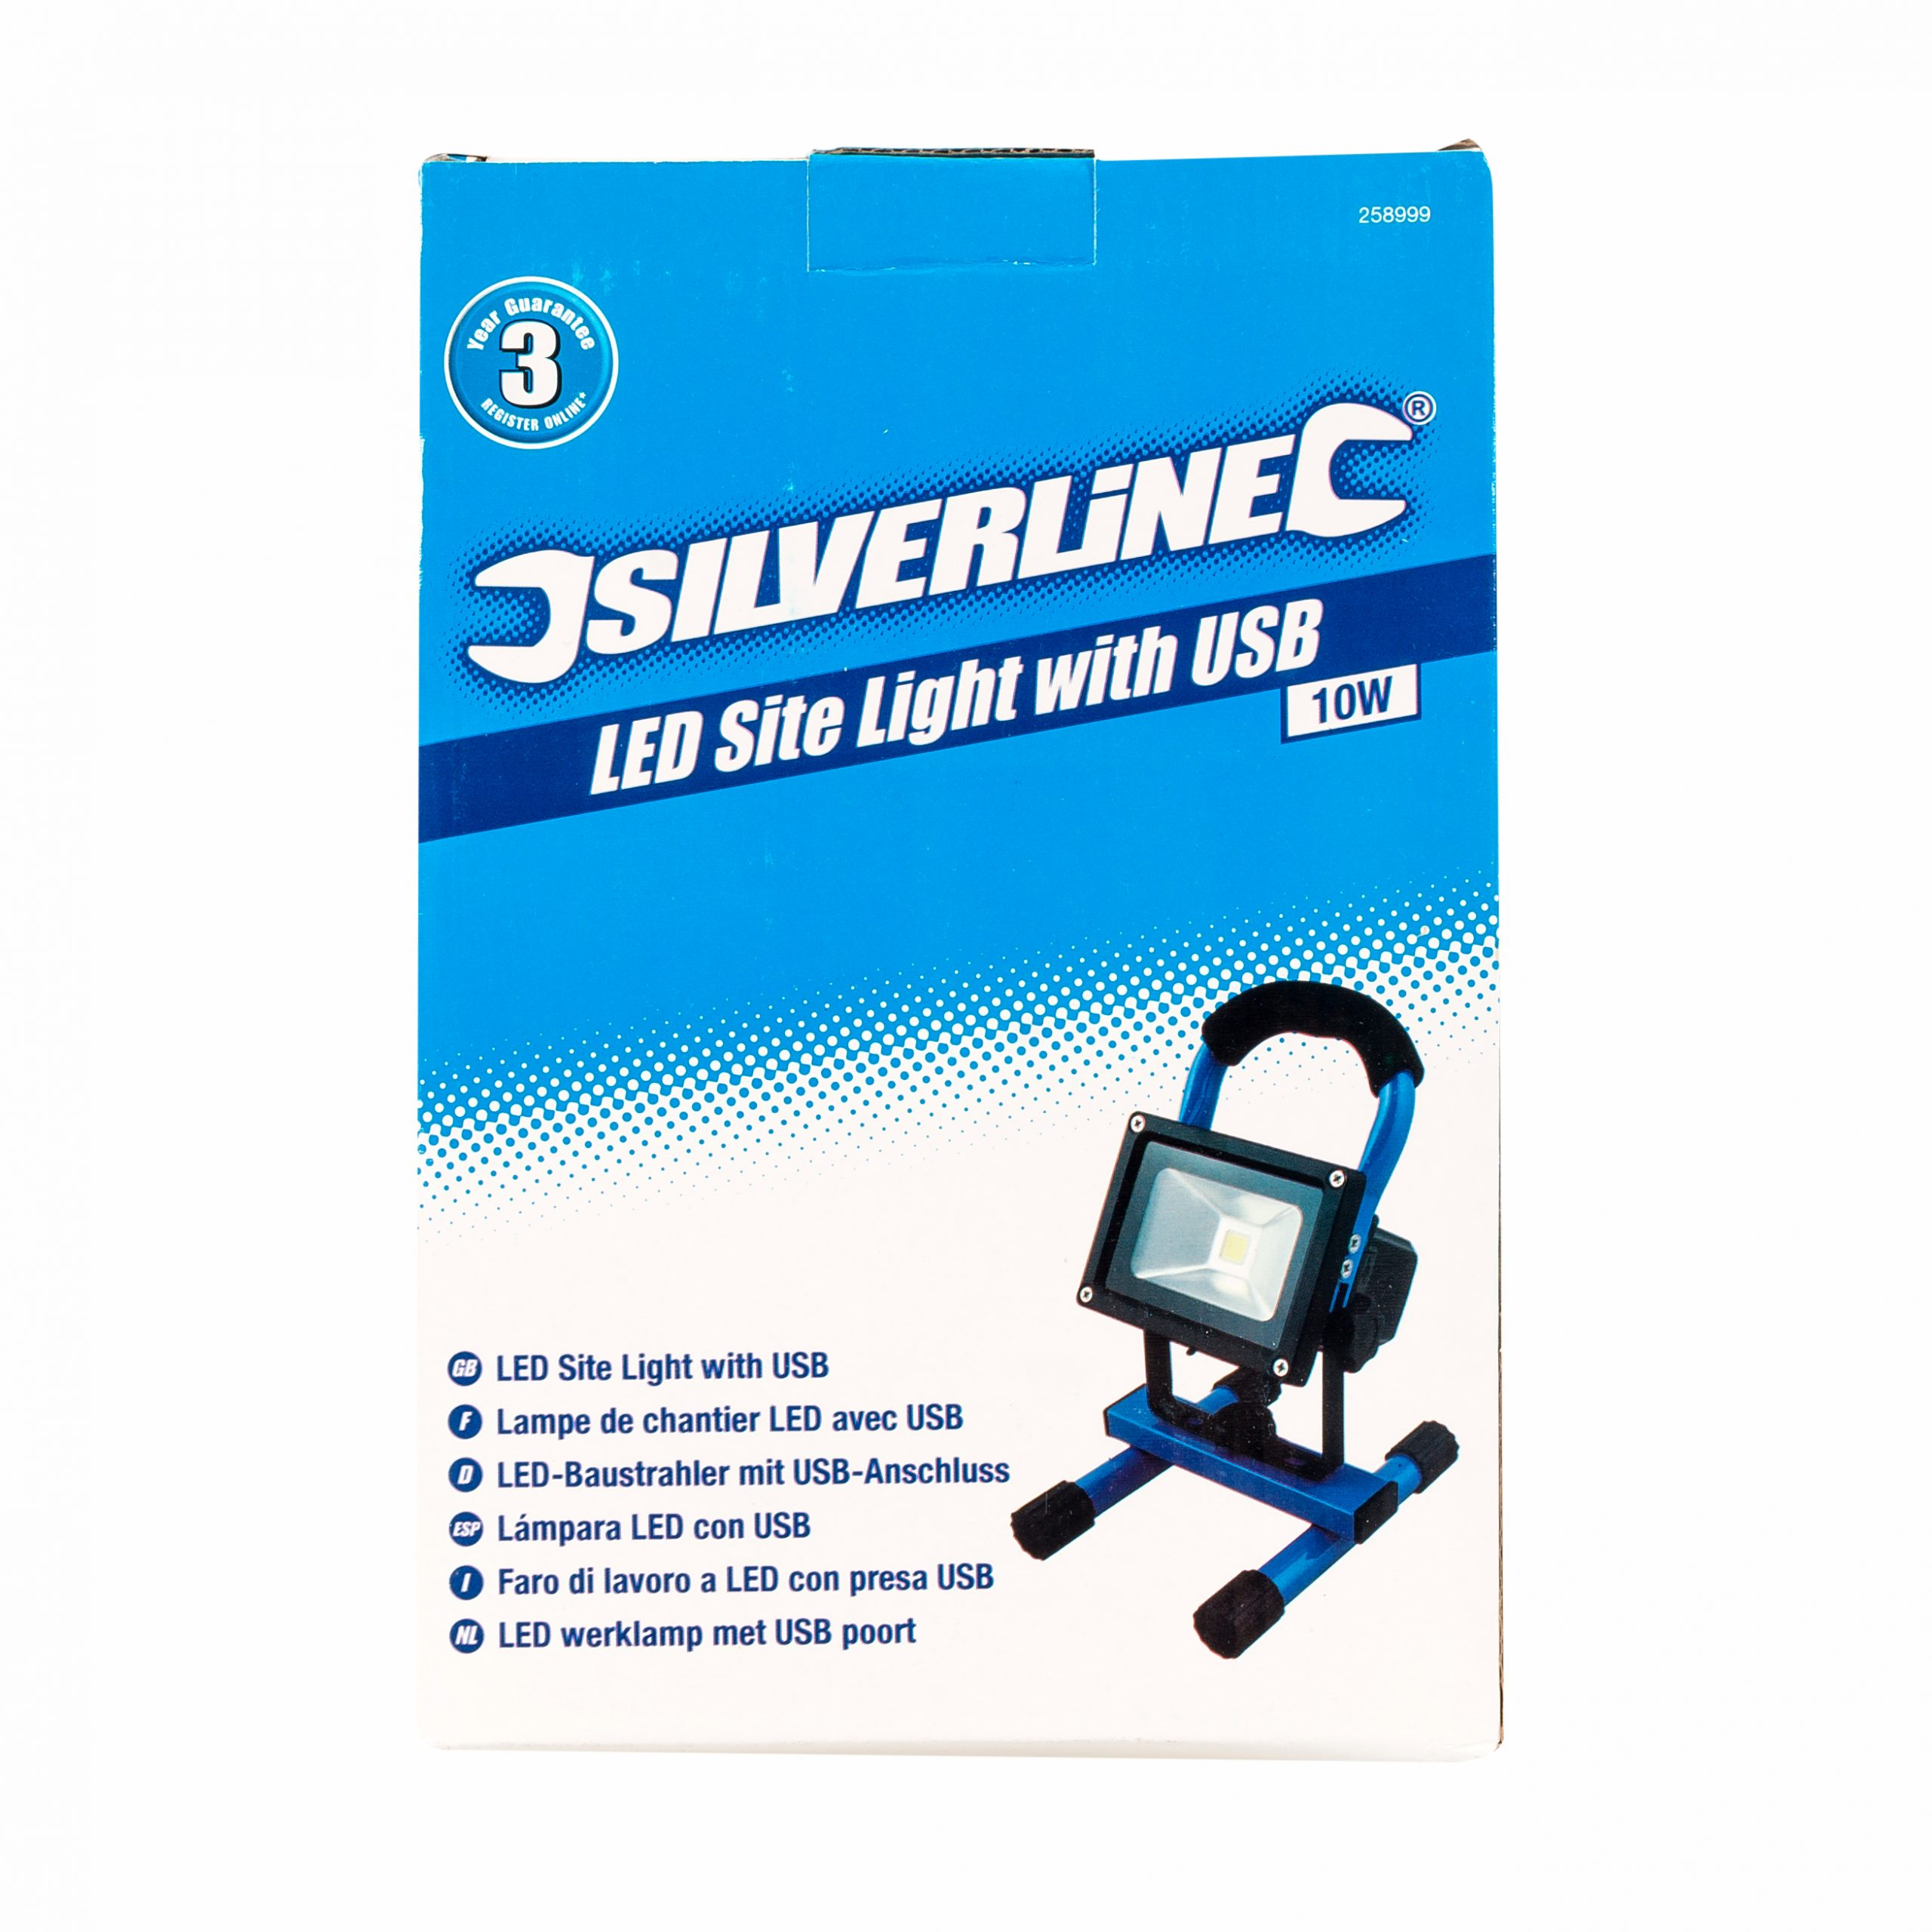 Silverline Led Rechargeable Site Light With Usb 10w Toolbolt